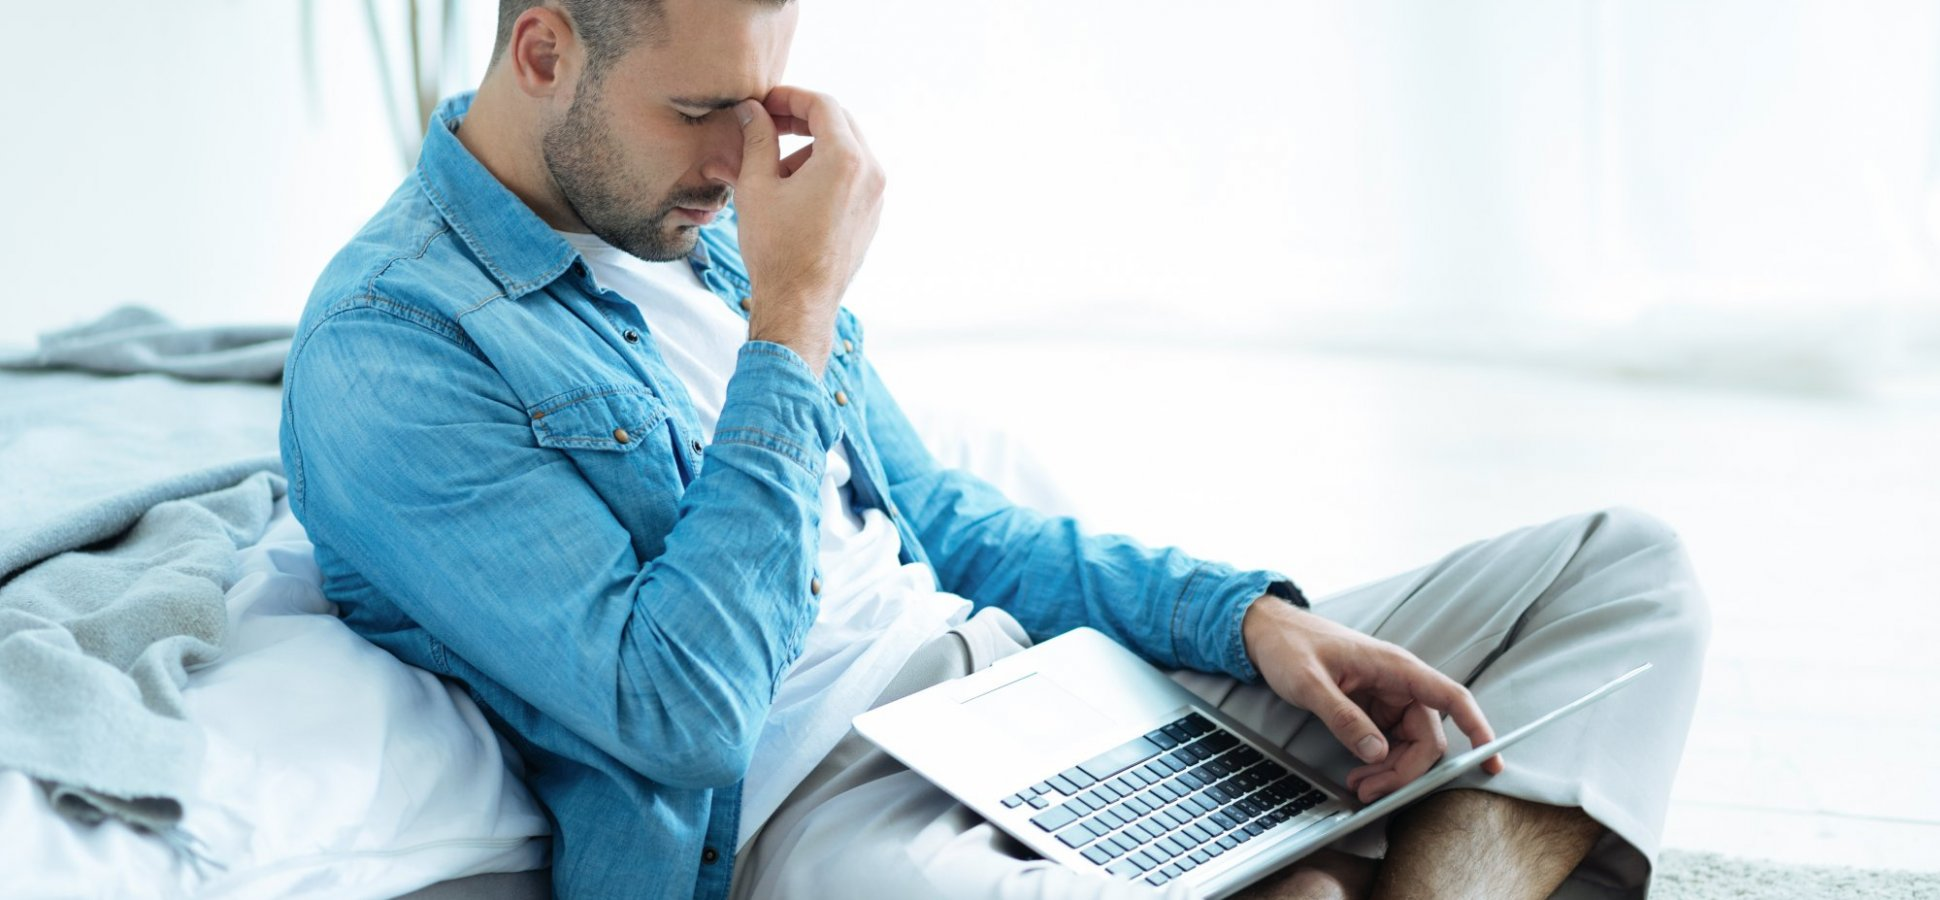 Working Too Hard Actually Makes You Less Productive. Here's What to Do Instead